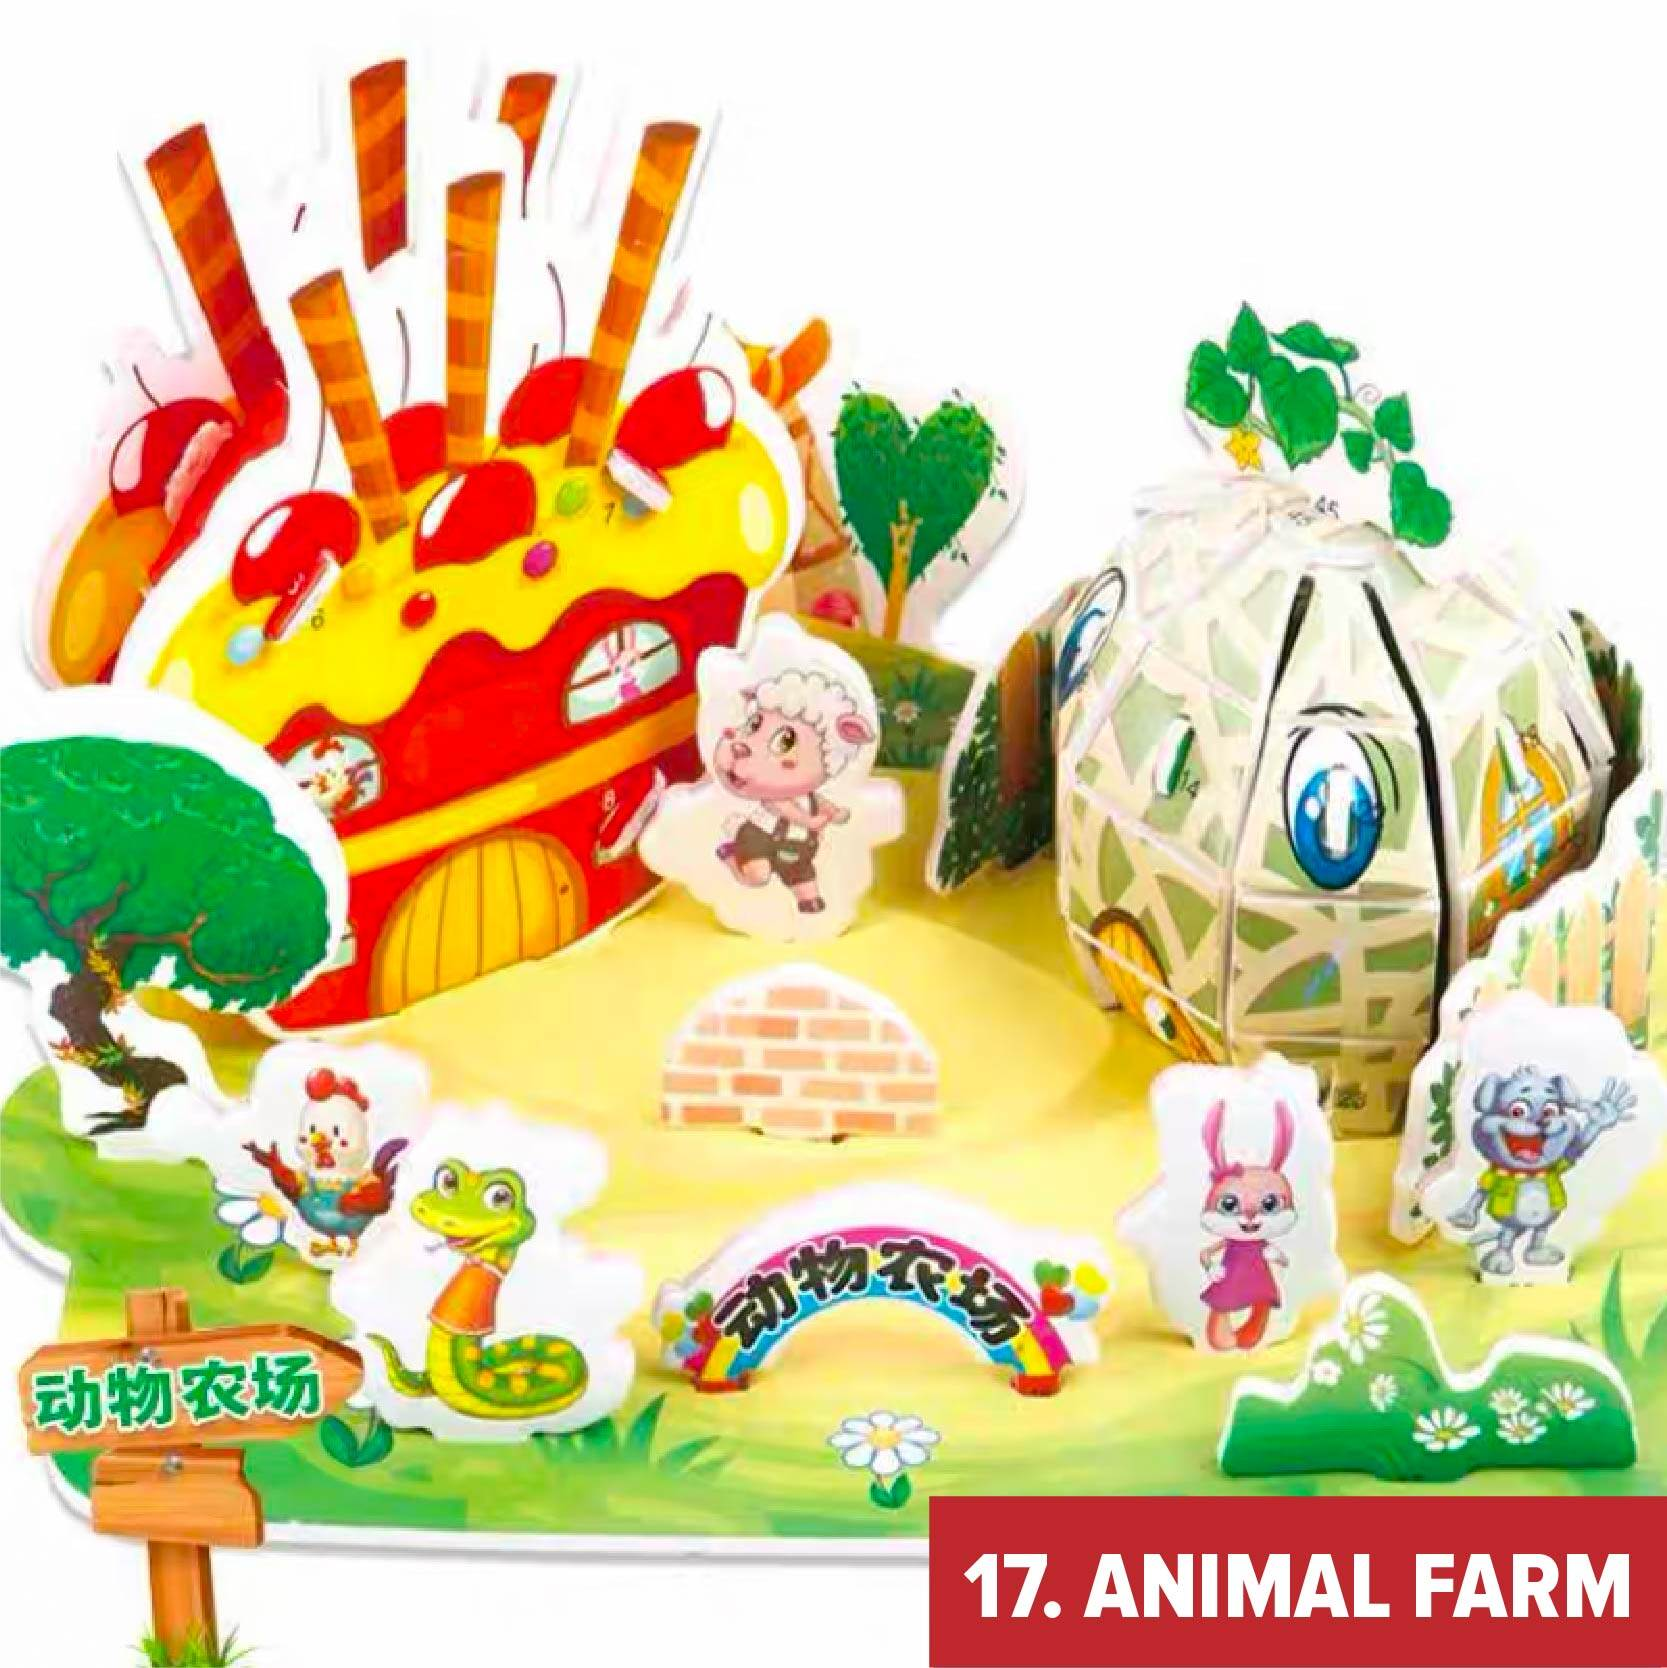 APA 3D Puzzle Jigsaw Educational Toys For Kids Architecture Brain Games